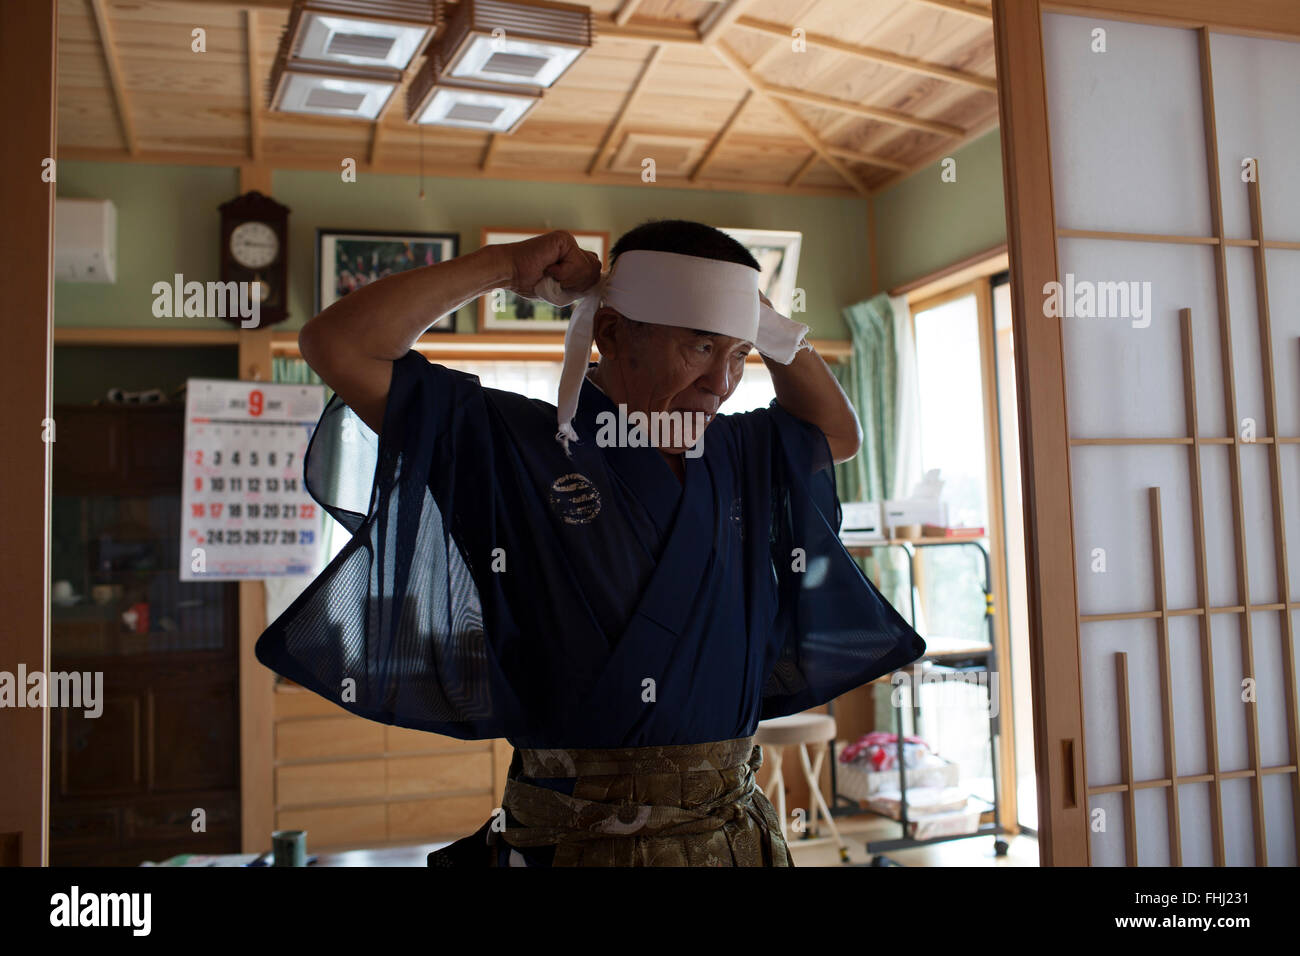 The Fukushima samurais -  Japan / Fukushima  -  Nomaoi man wearing his Hachimaki headband. - Stock Image